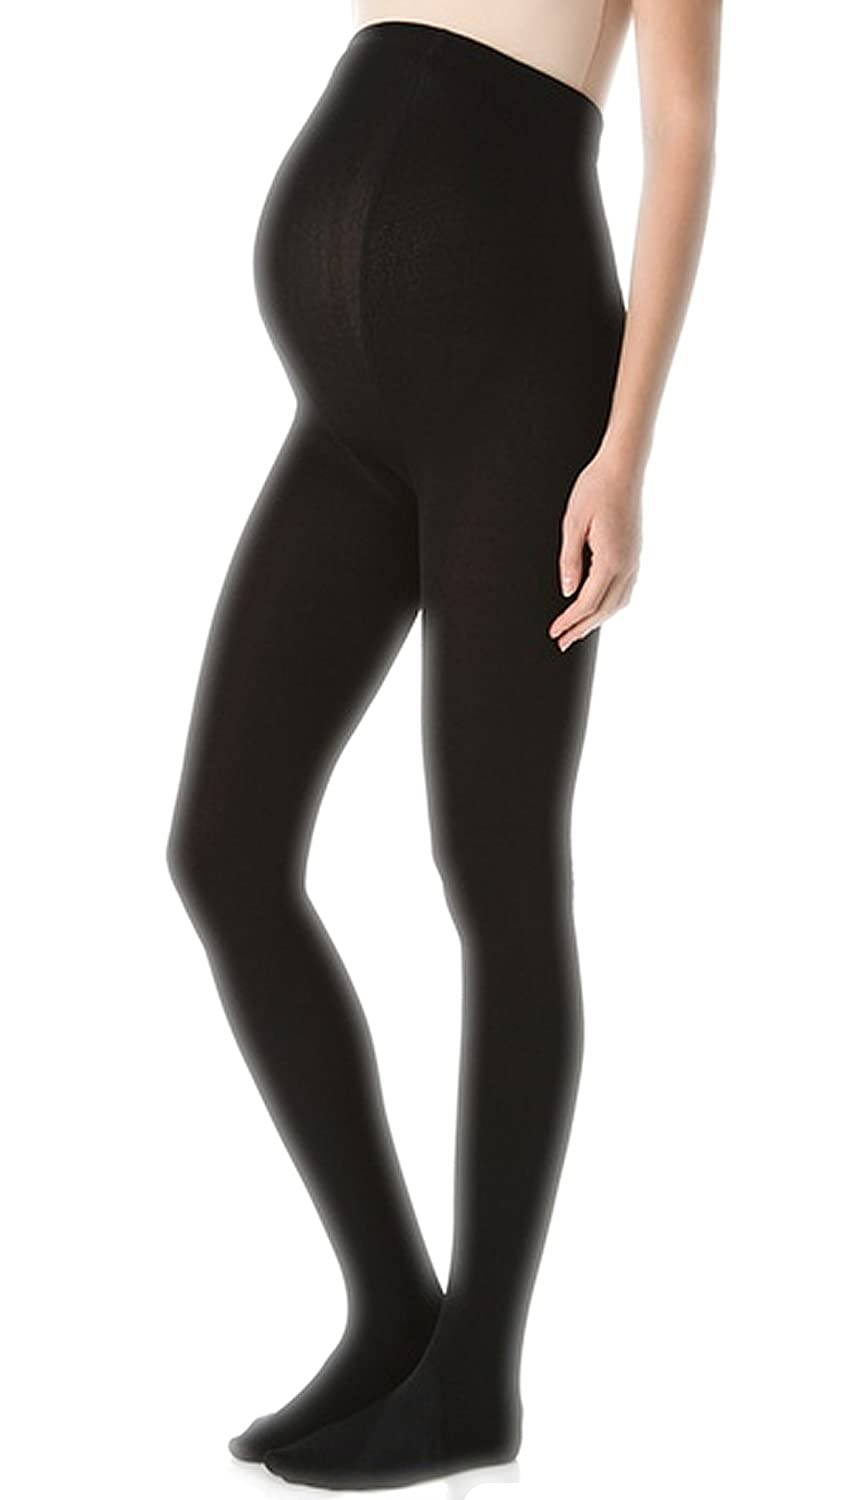 2 Pairs 40 Denier Black Opaque Comfortable Maternity Tights for Pregnancy